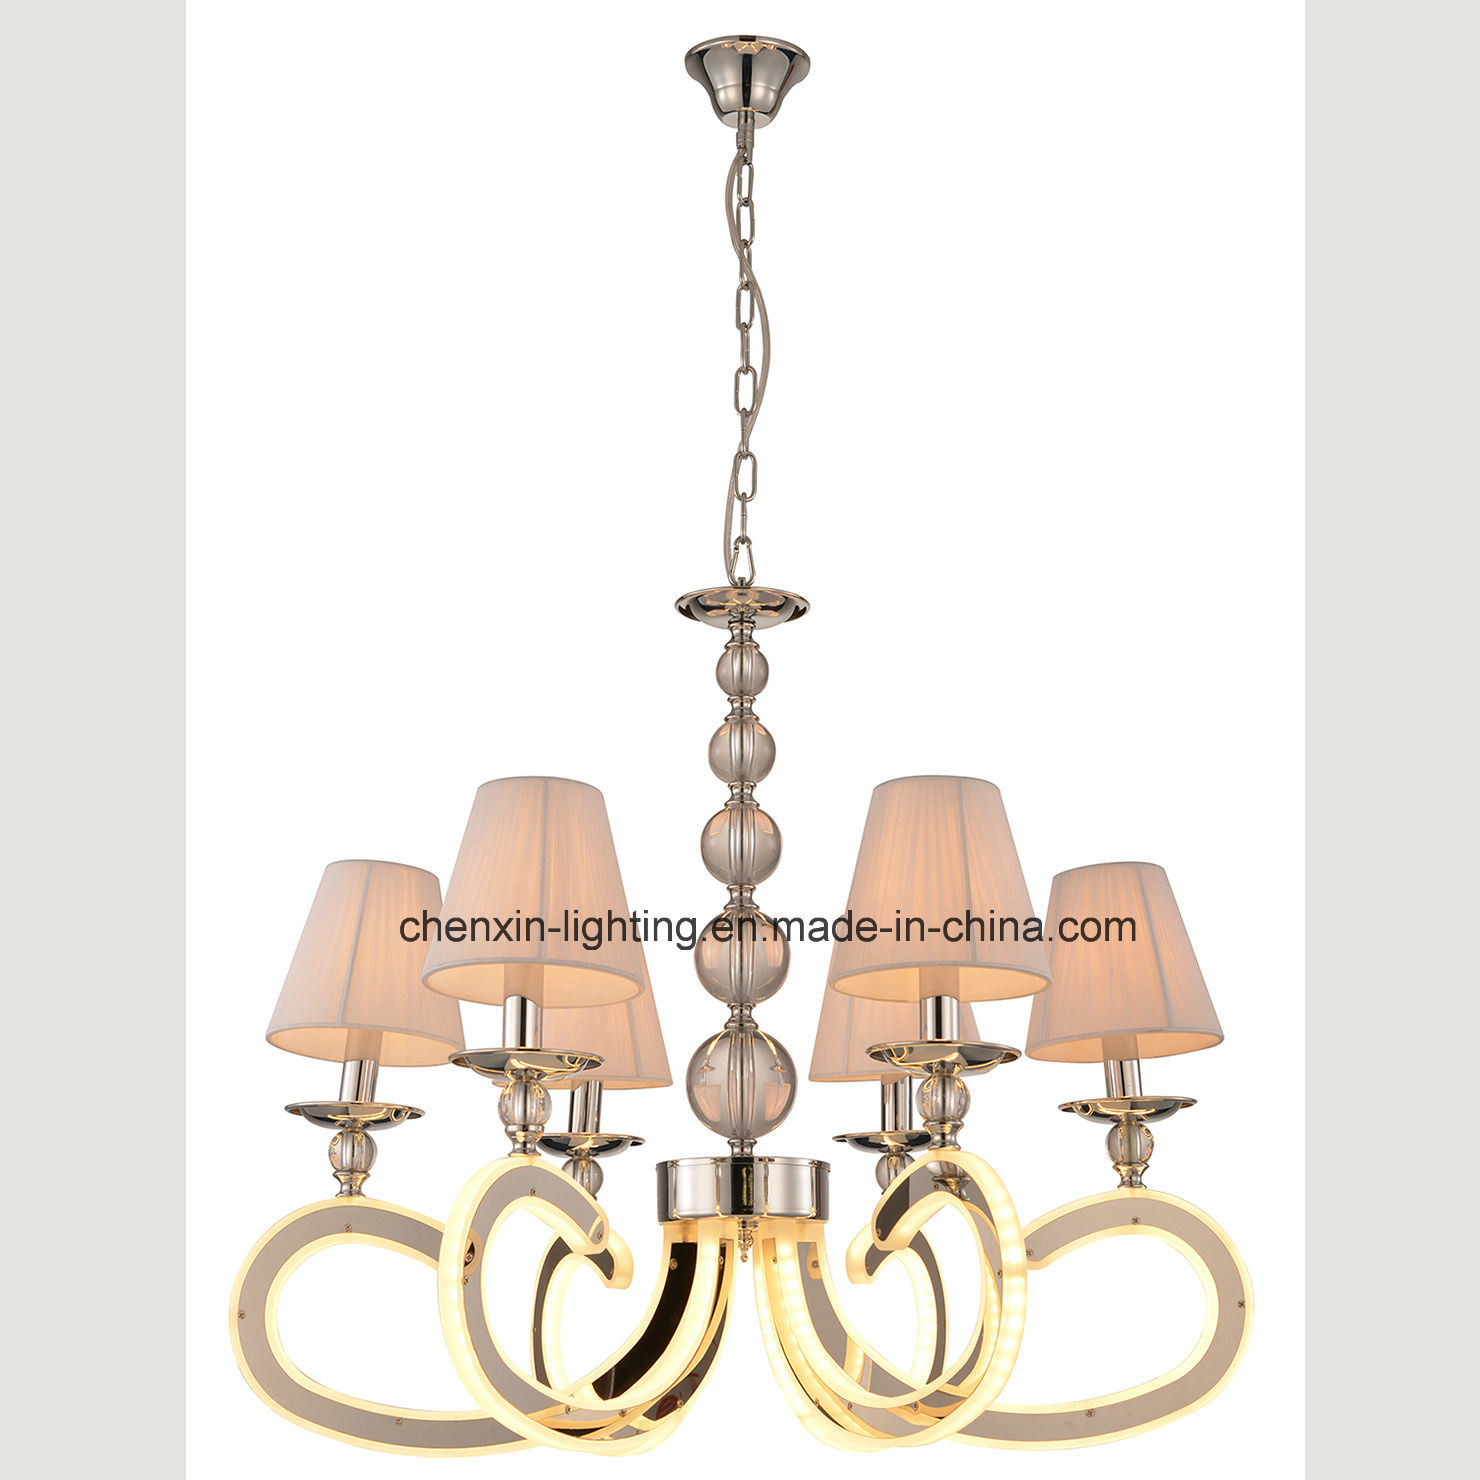 2016 Big Project Clear Acrylic Chandelier Light Lamp